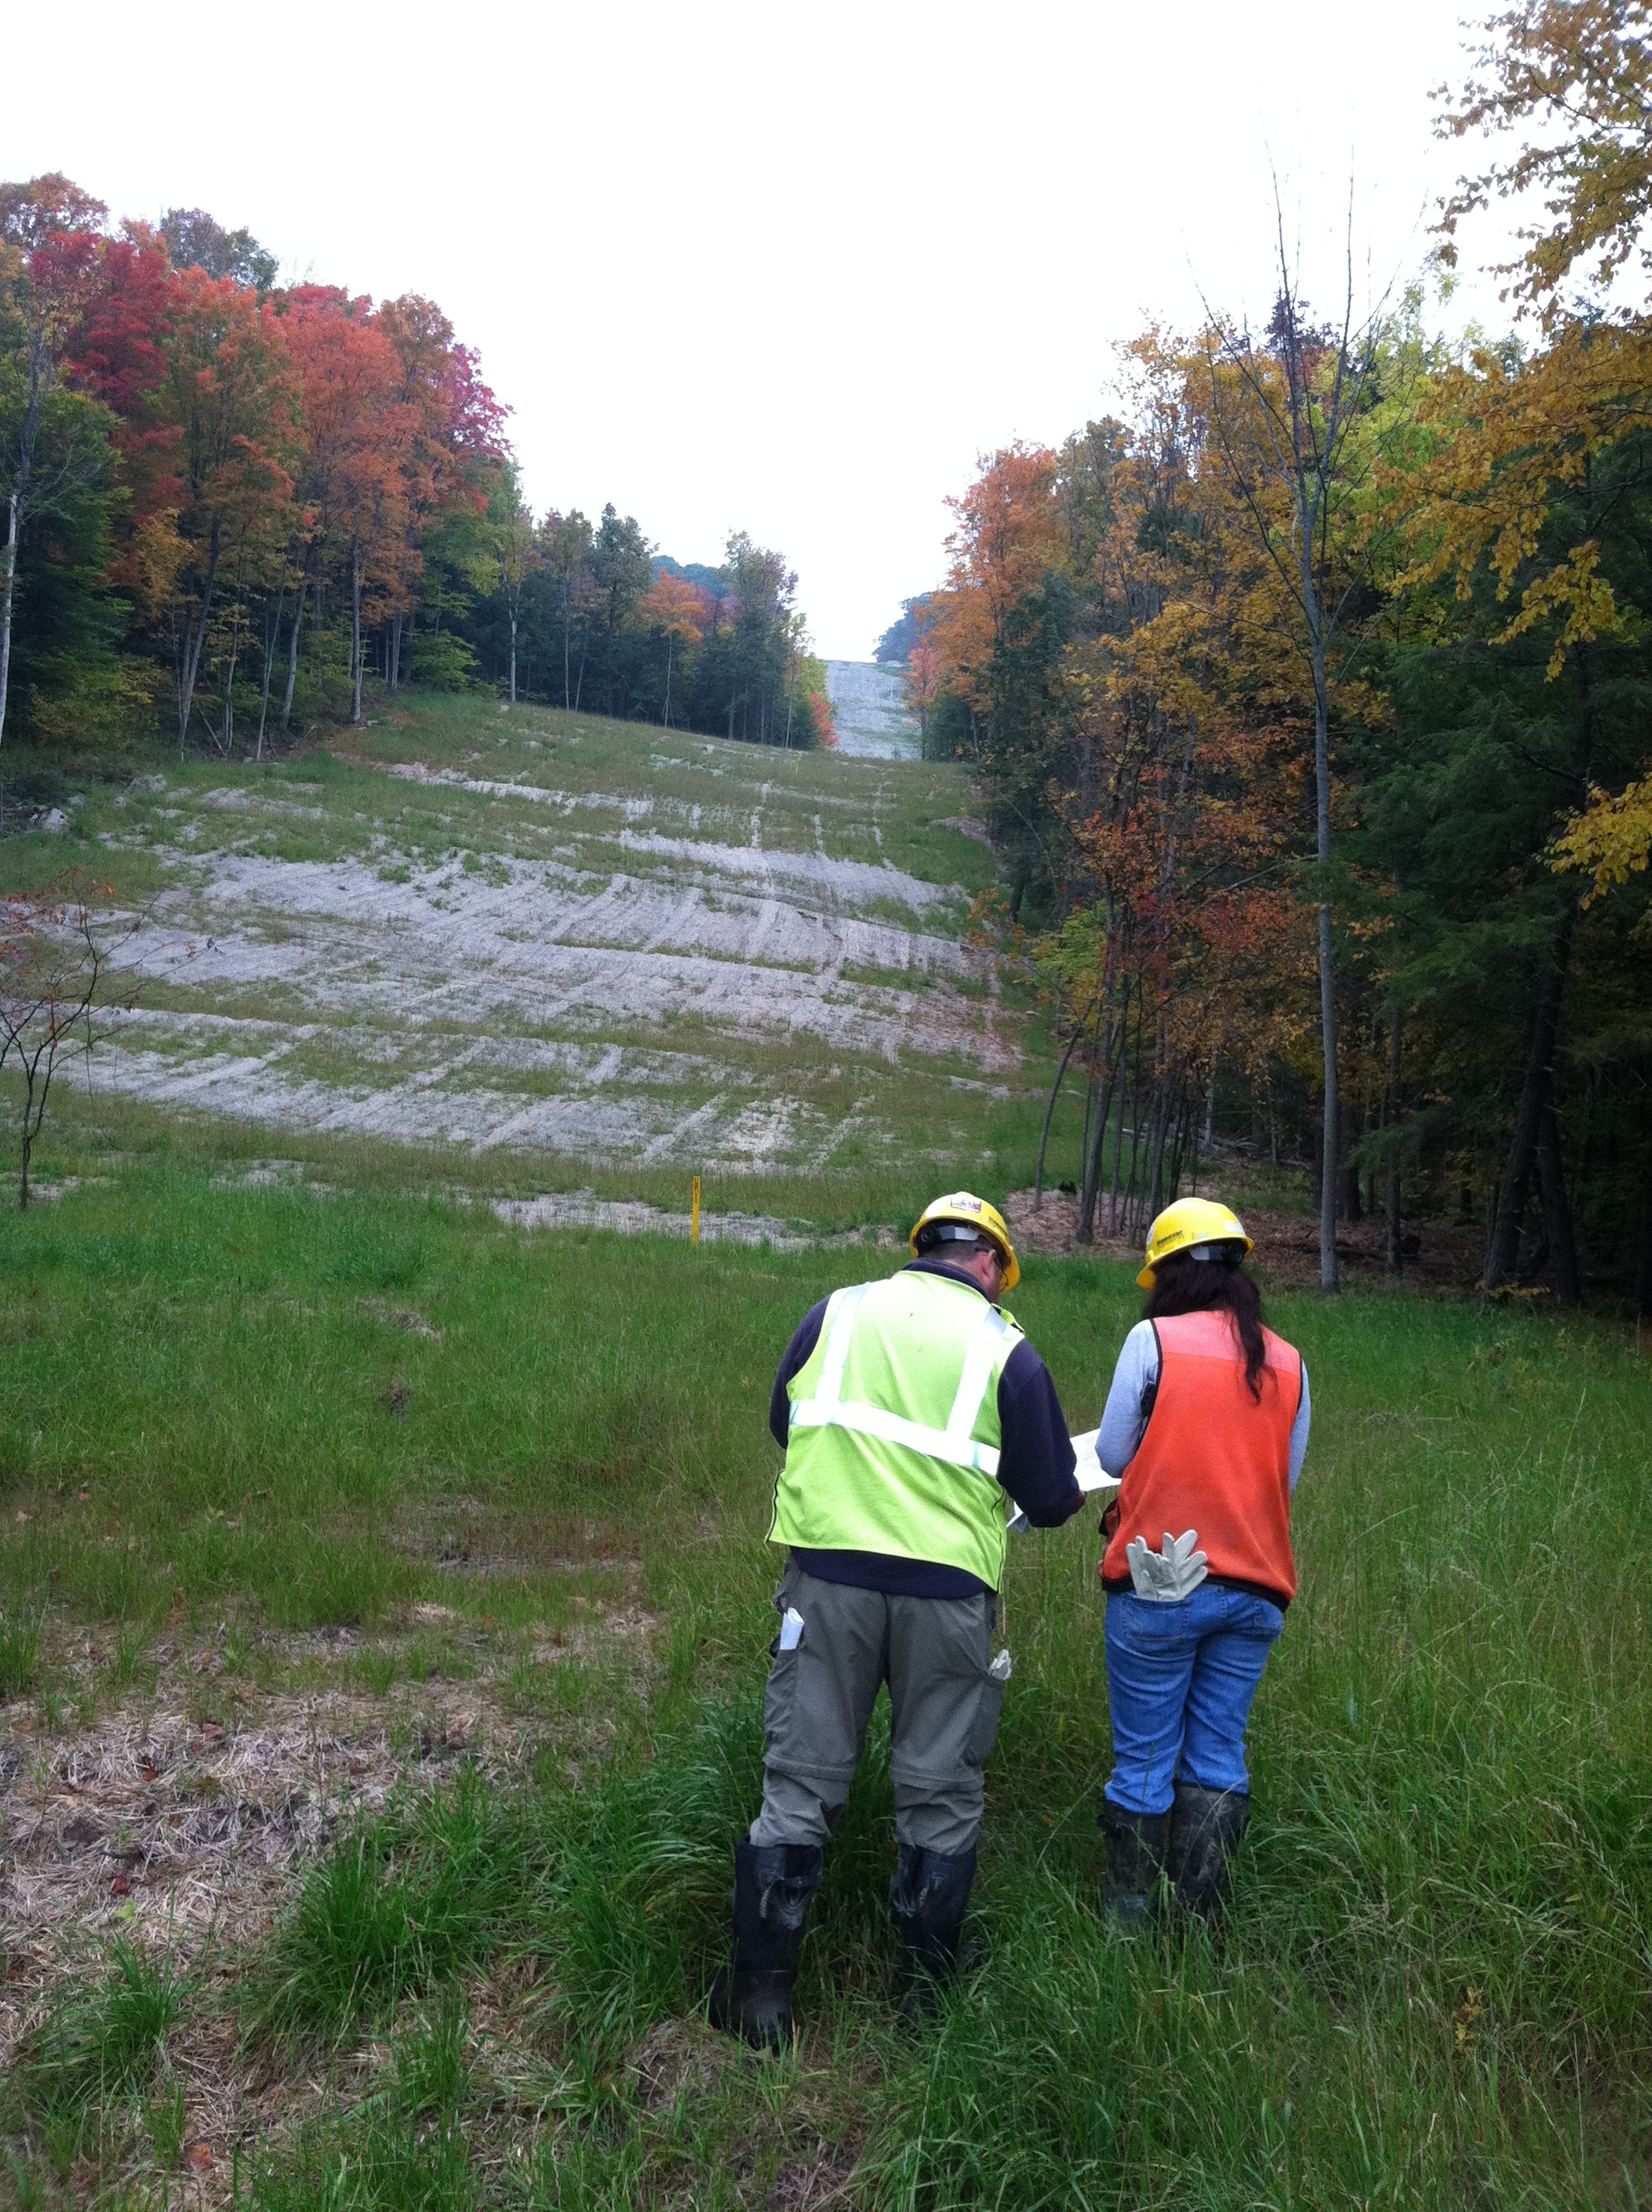 Picture of work being done on pipeline in Tioga County, PA.